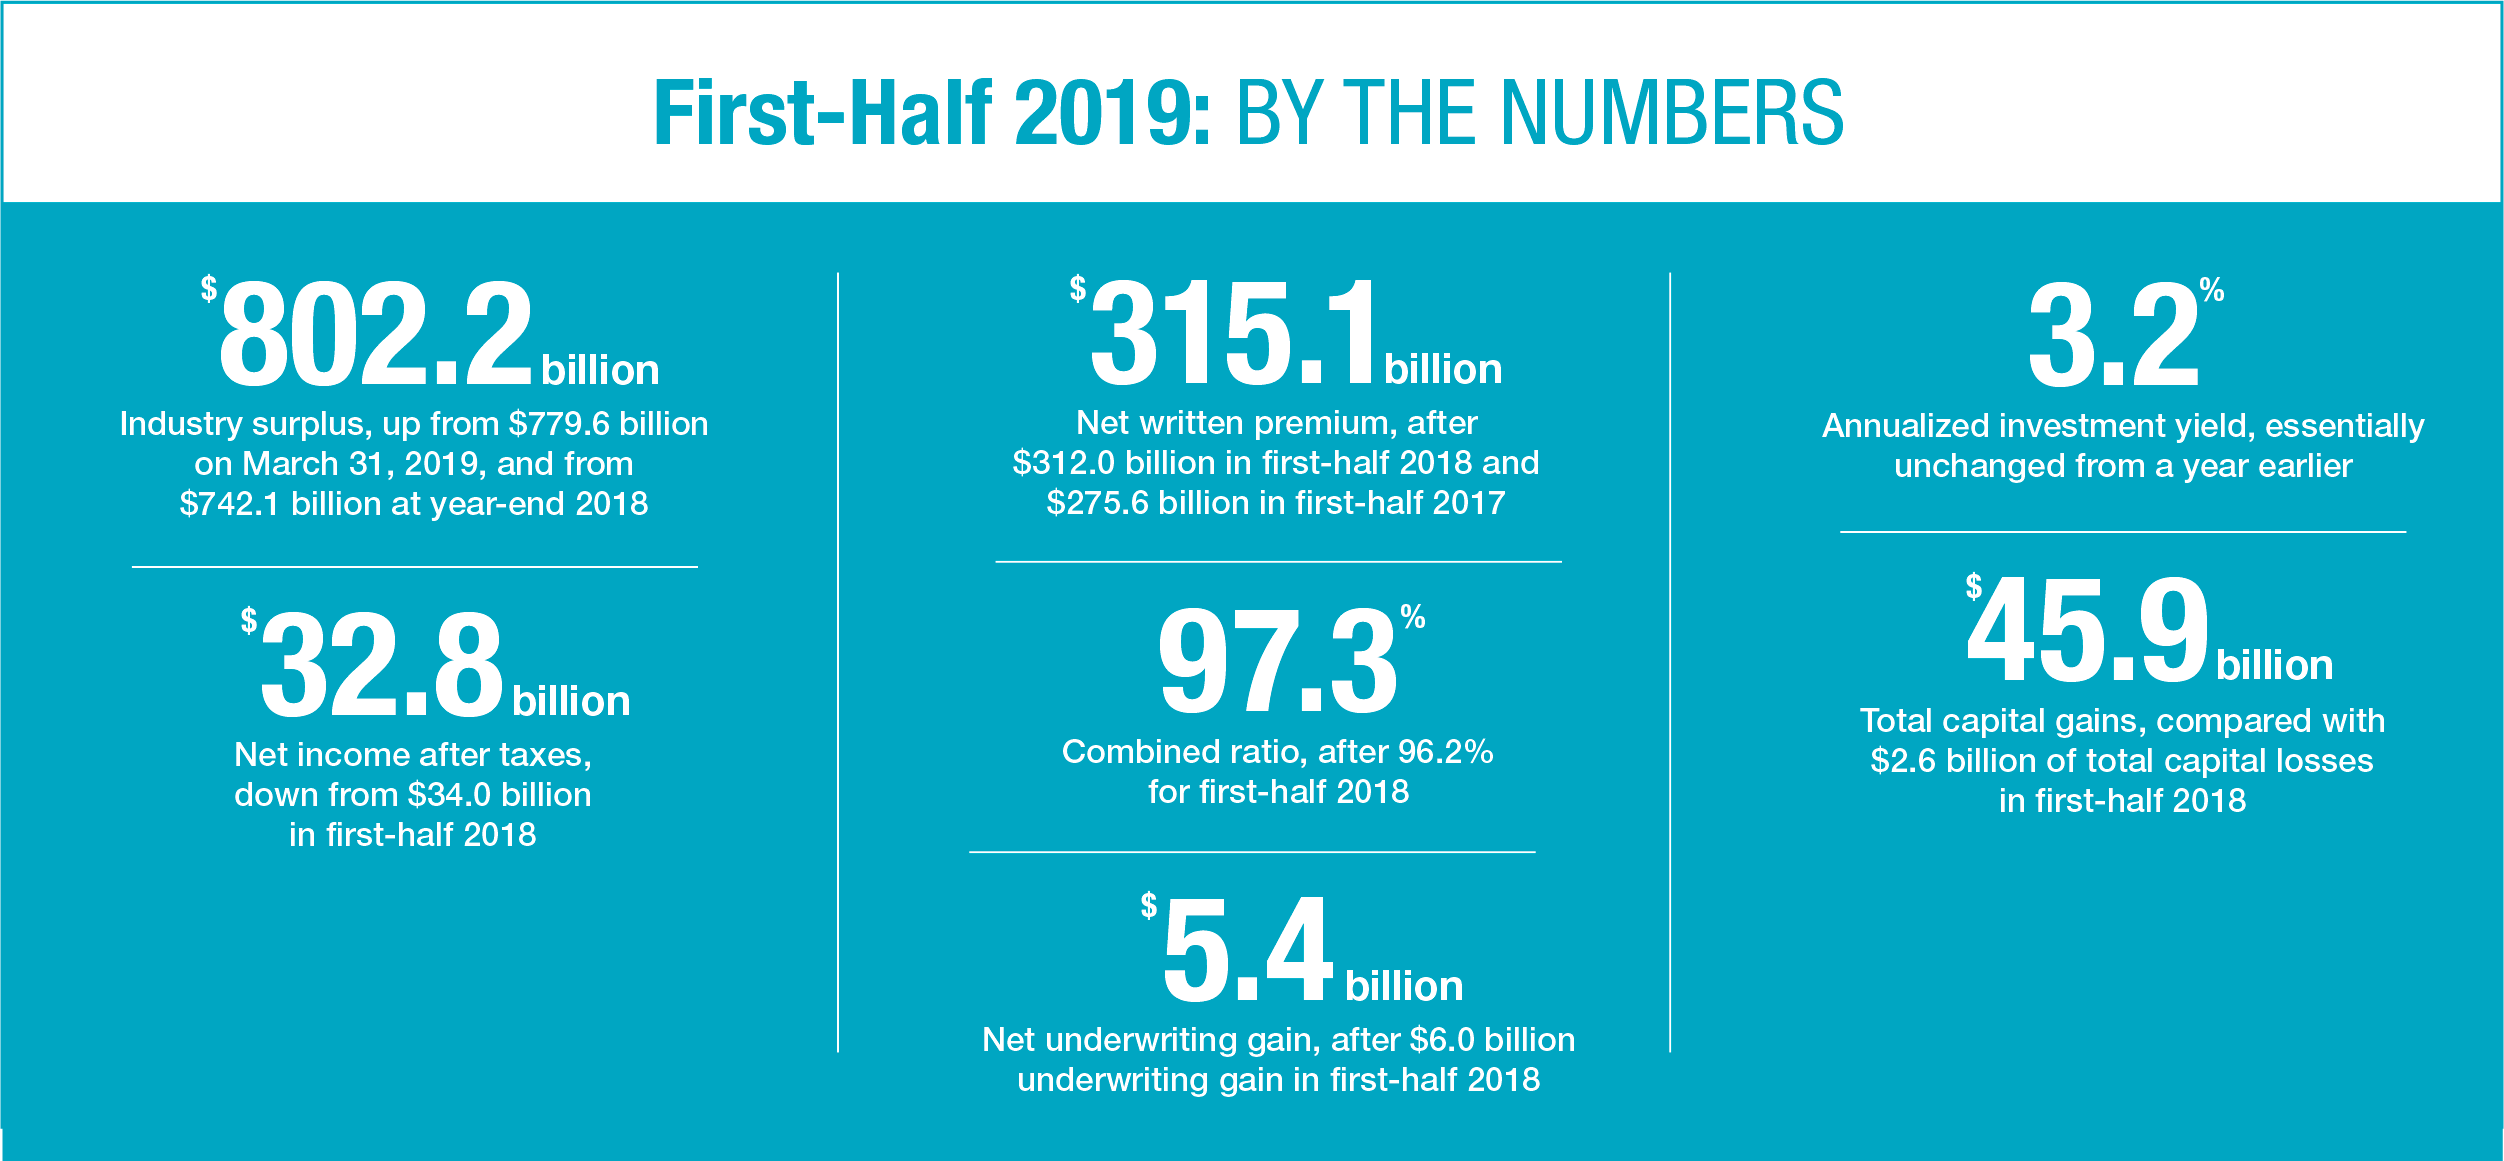 First-Half 2019: By the Numbers